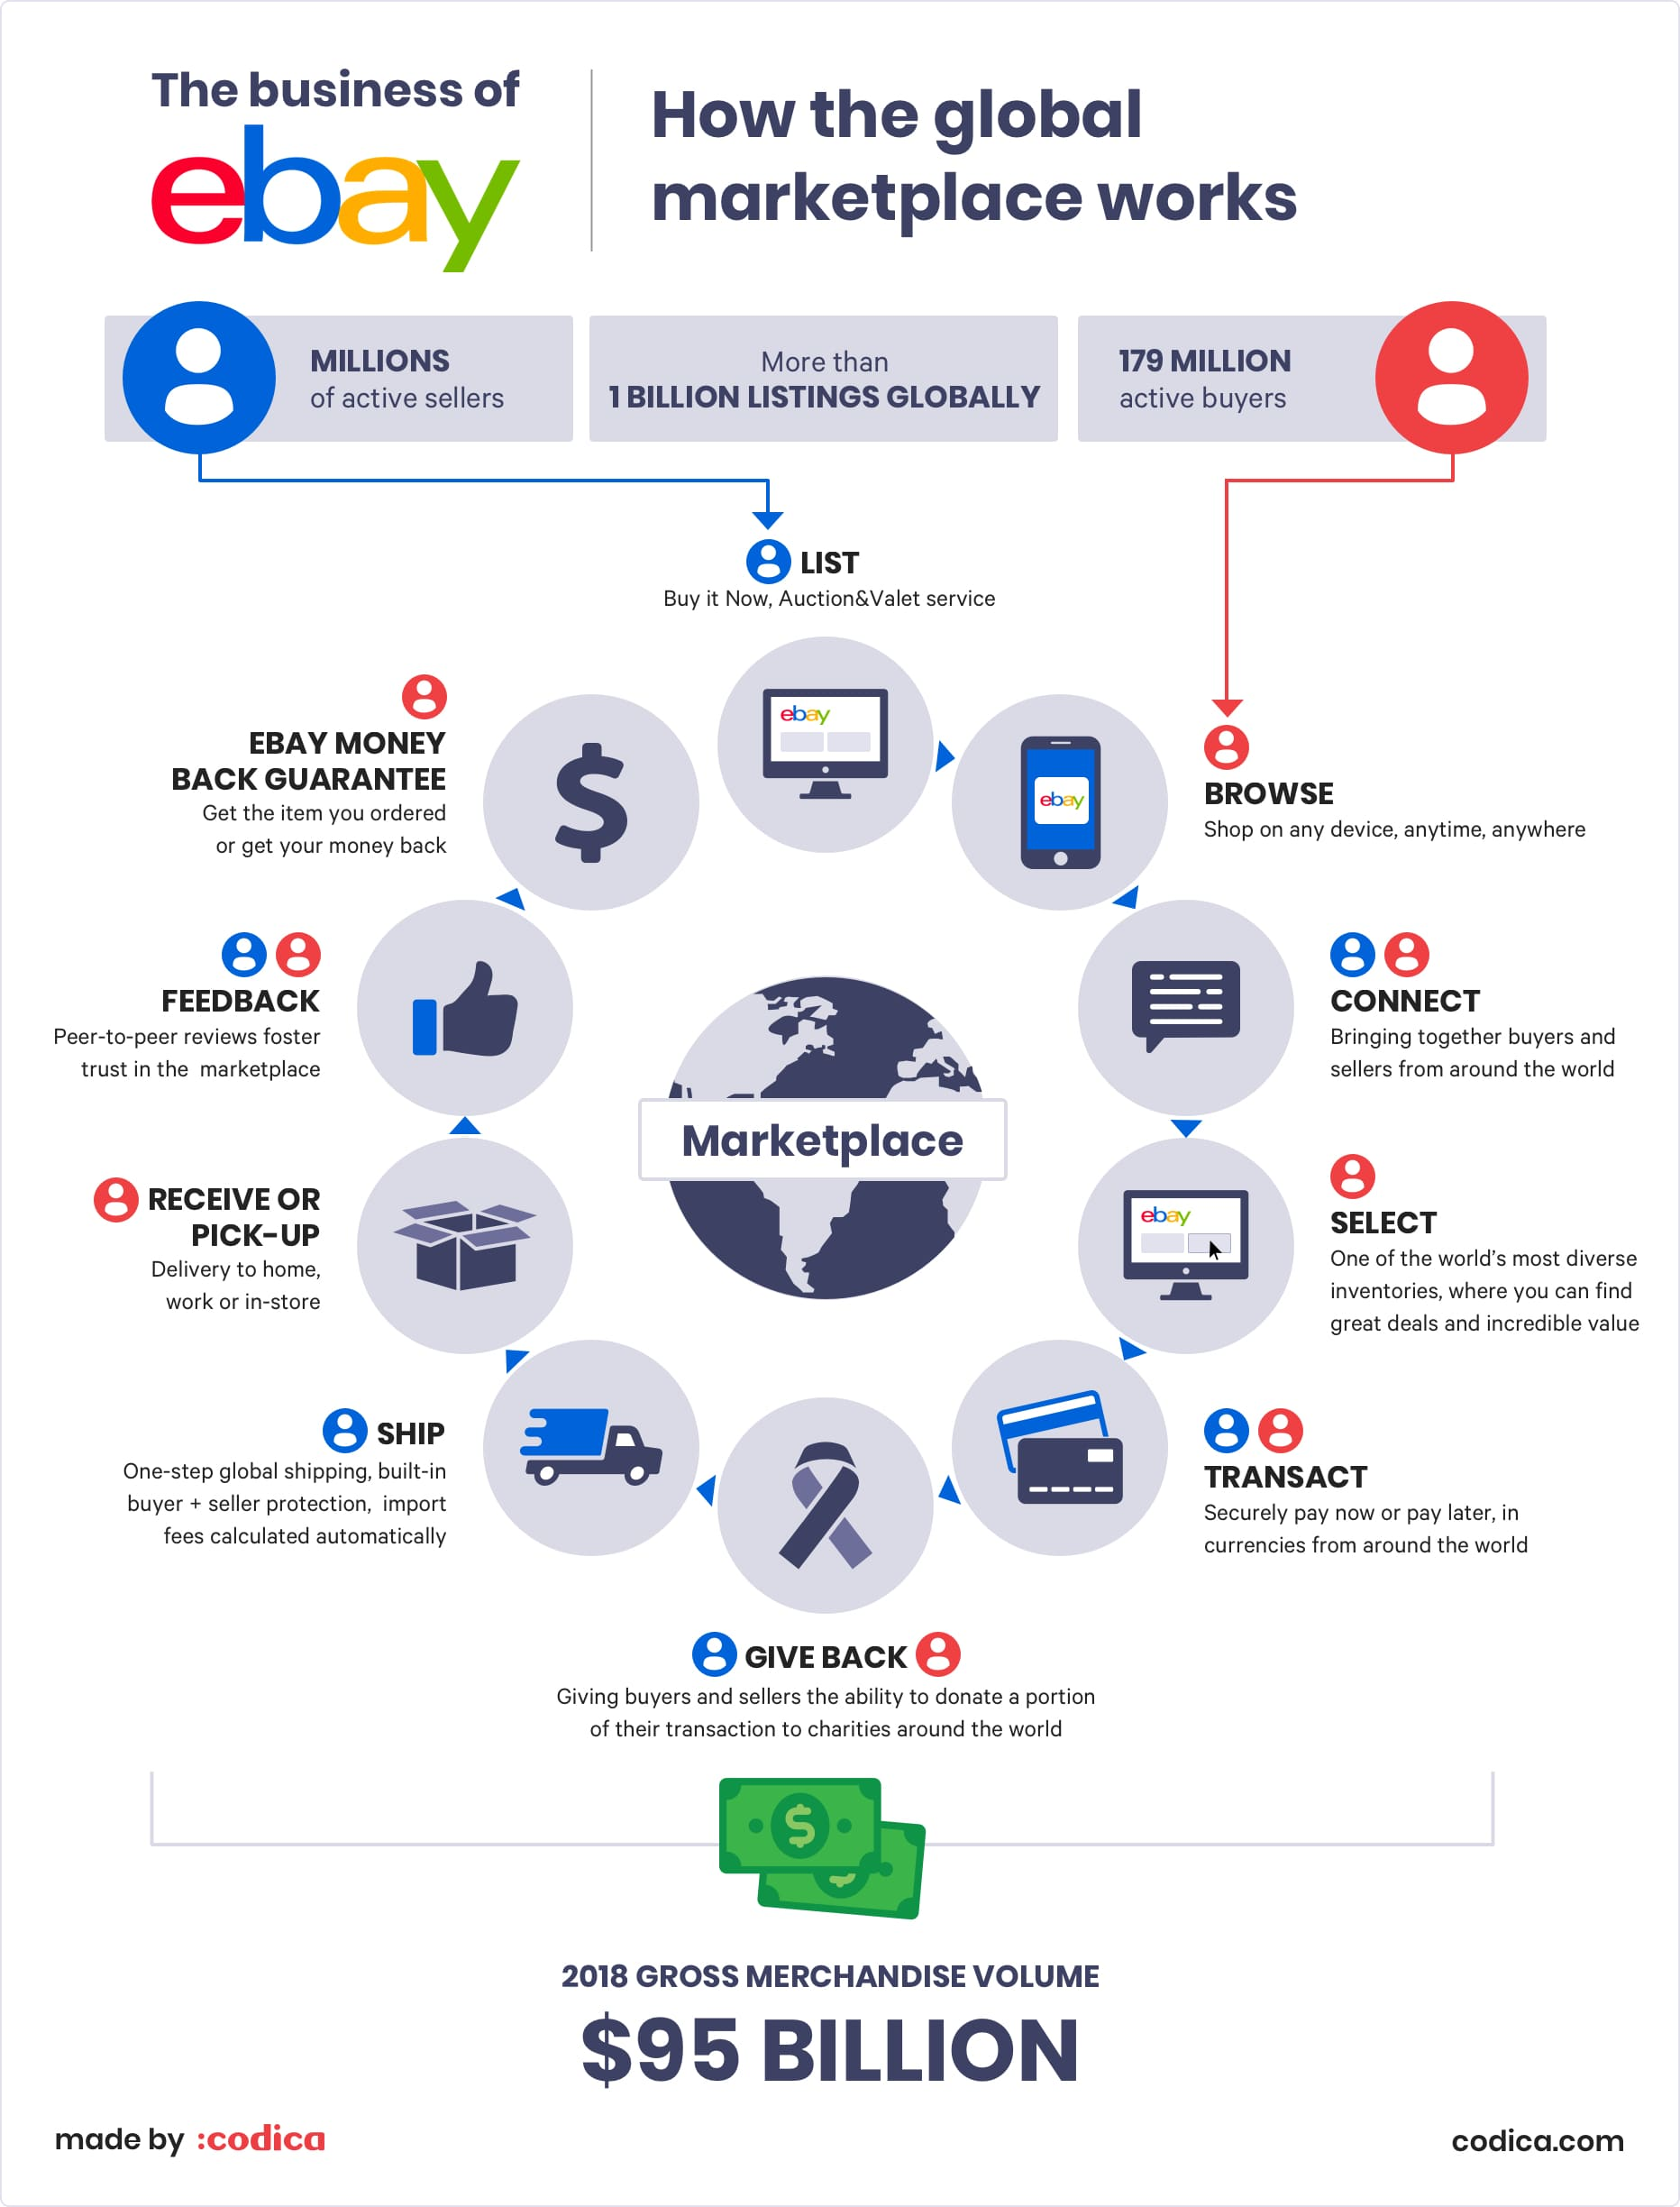 Top online marketplaces: How Ebay works | Codica